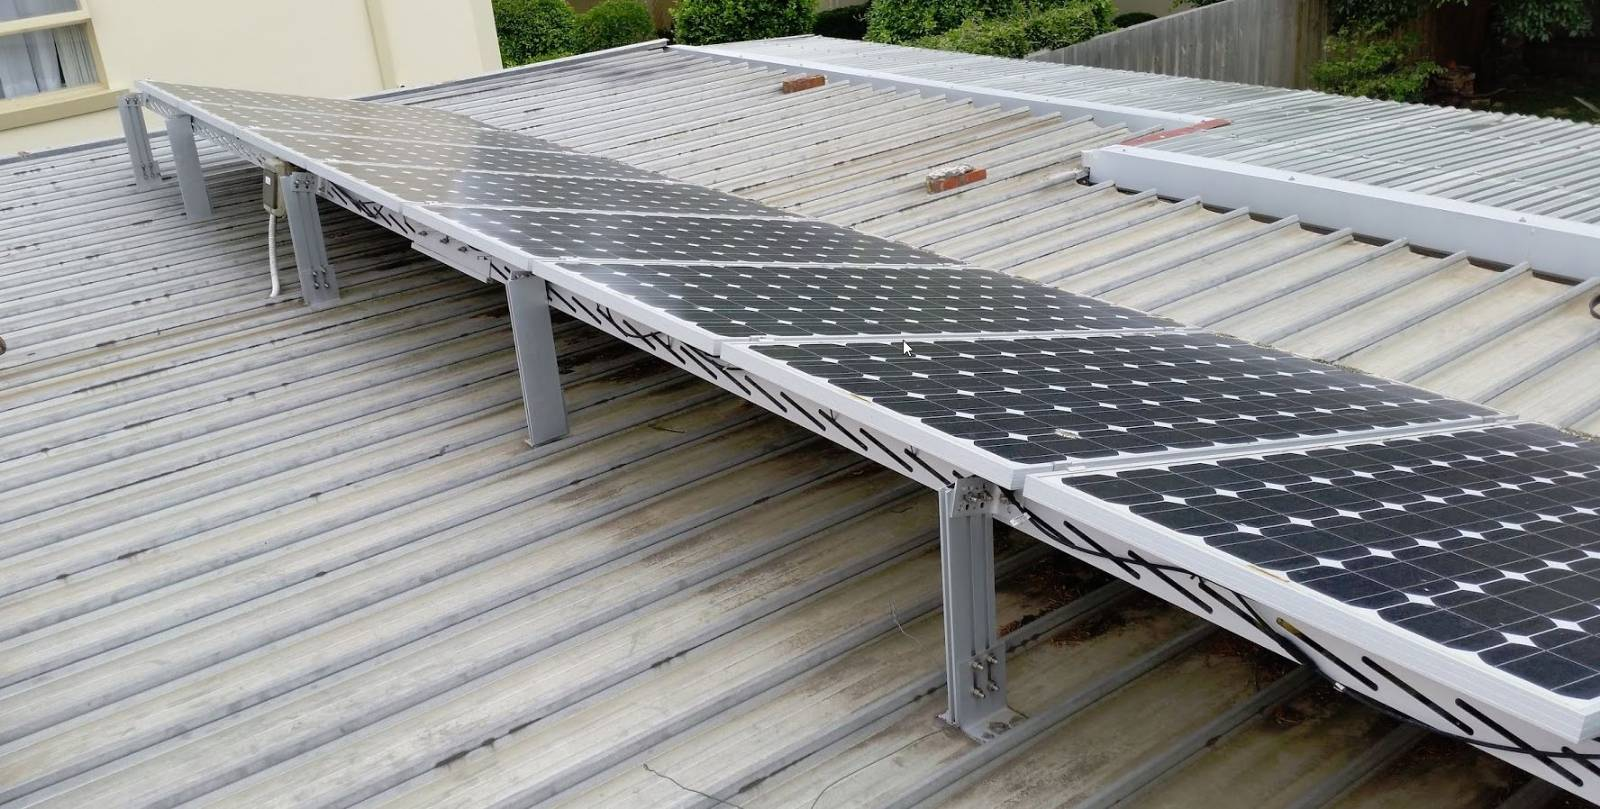 Flat roof + Solar panels - Is it possible?